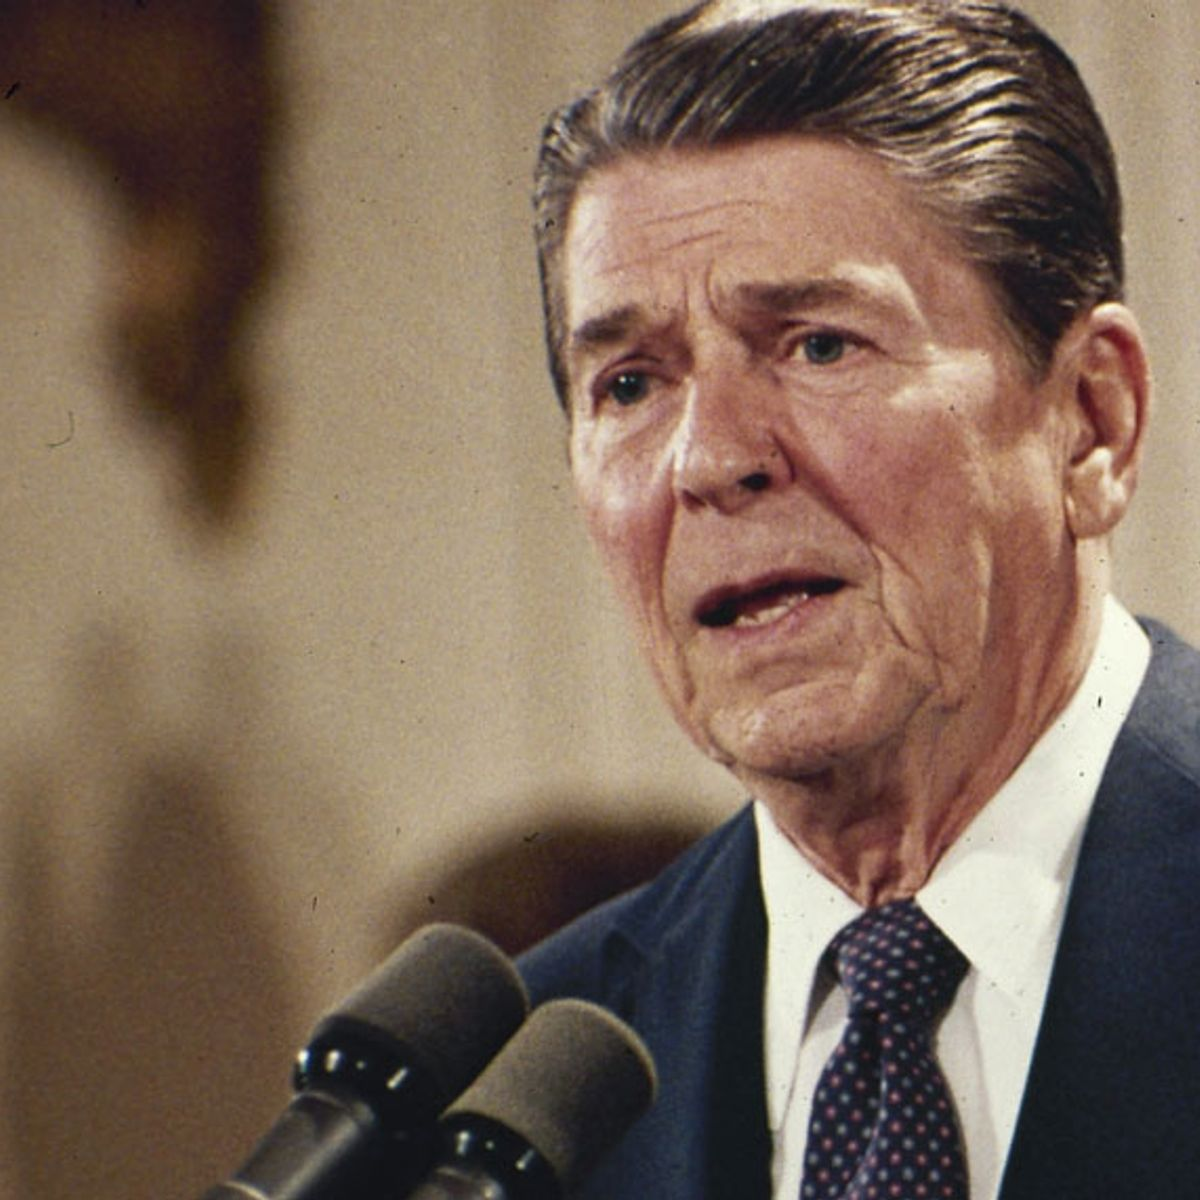 We have to undo the attack on the middle class that started with Reagan if we want democracy back